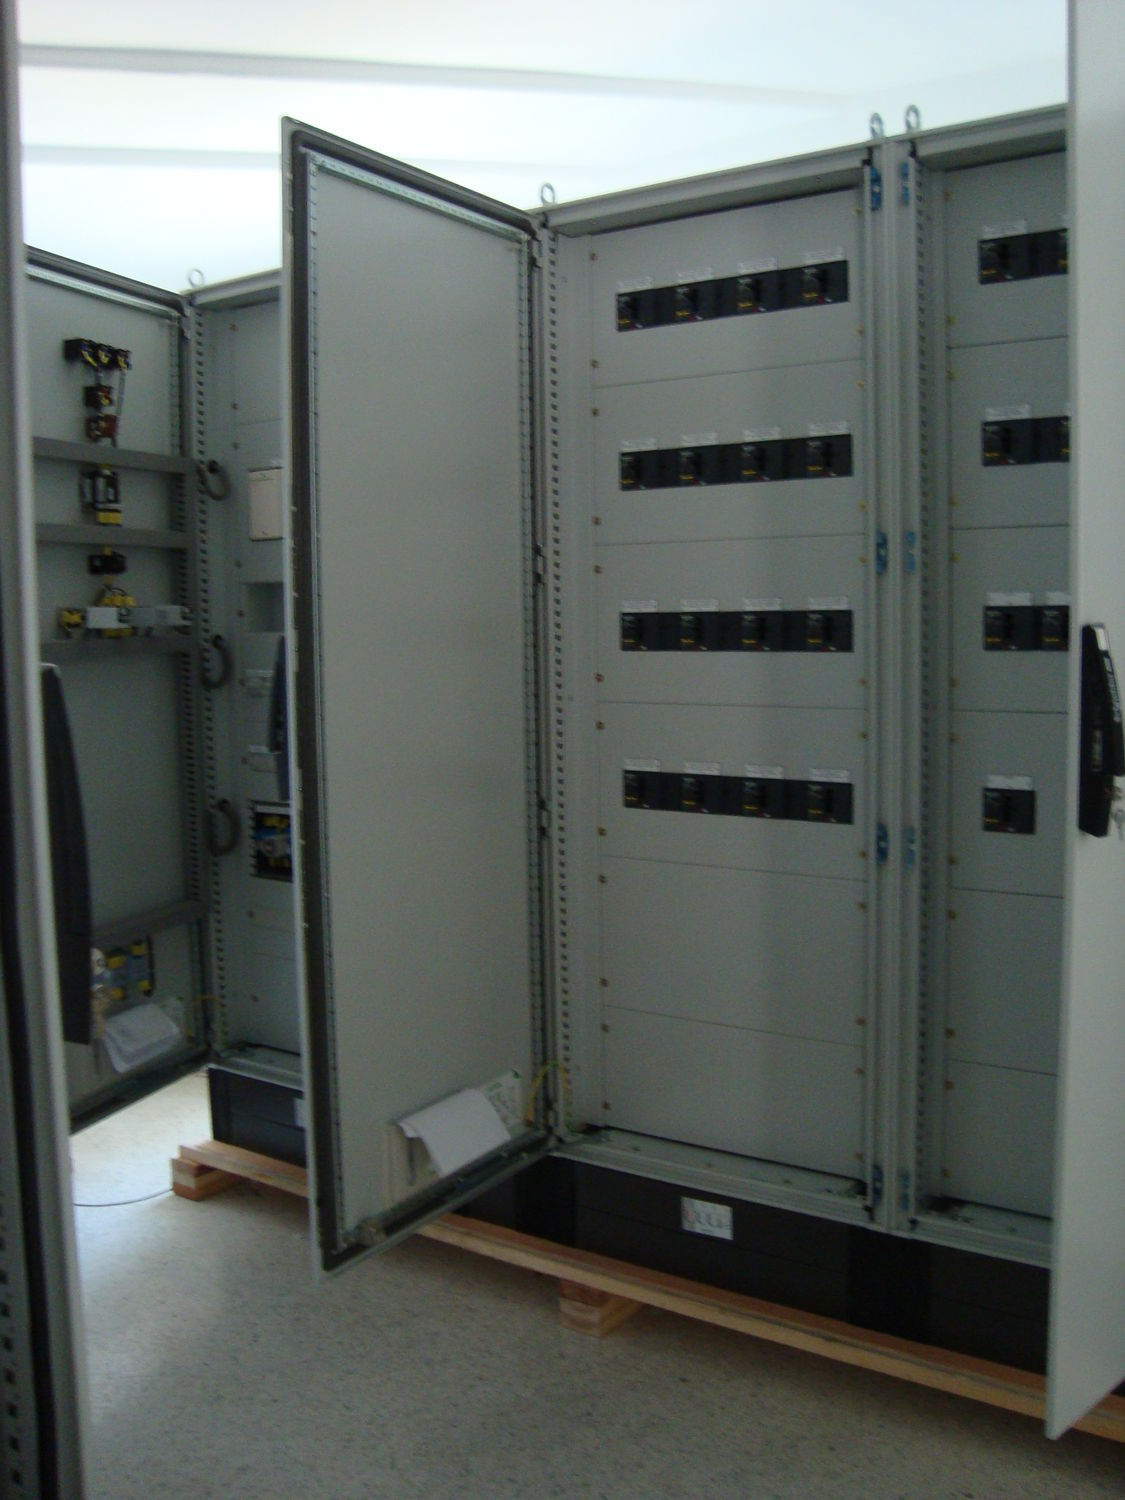 equipped fuse box / floor-mounted / metal / outdoor